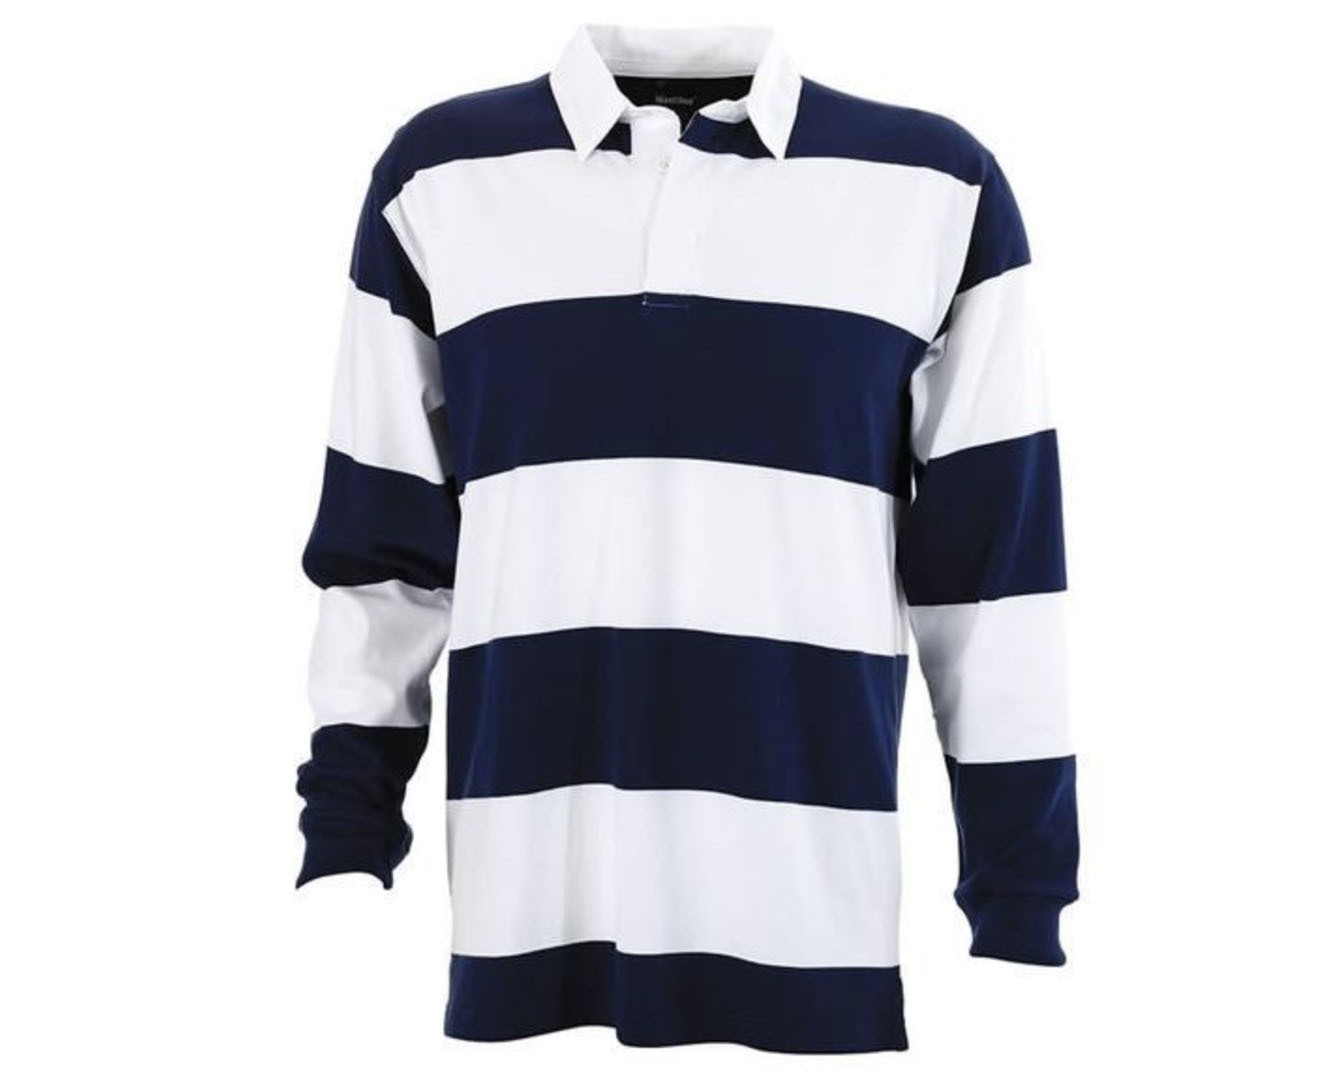 Identitee-Men-039-s-Striped-RUGBY-TOP-100-Cotton-Long-Sleeve-Jumper-Polo-Shirt thumbnail 16